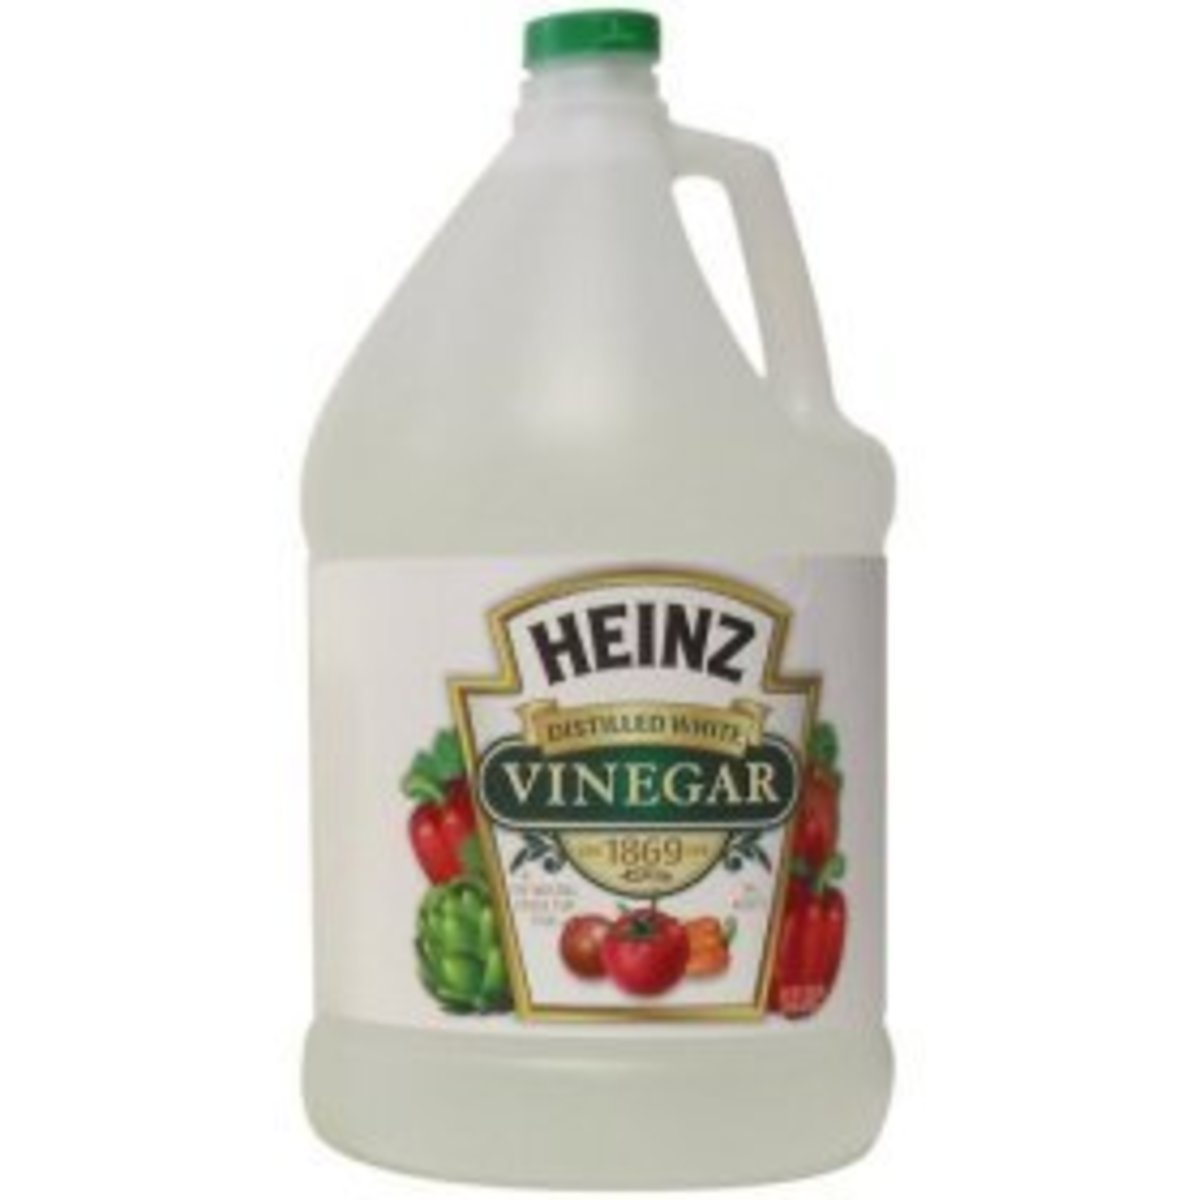 White Vinegar Is The Easiest Way To Get Rid Of Mold.